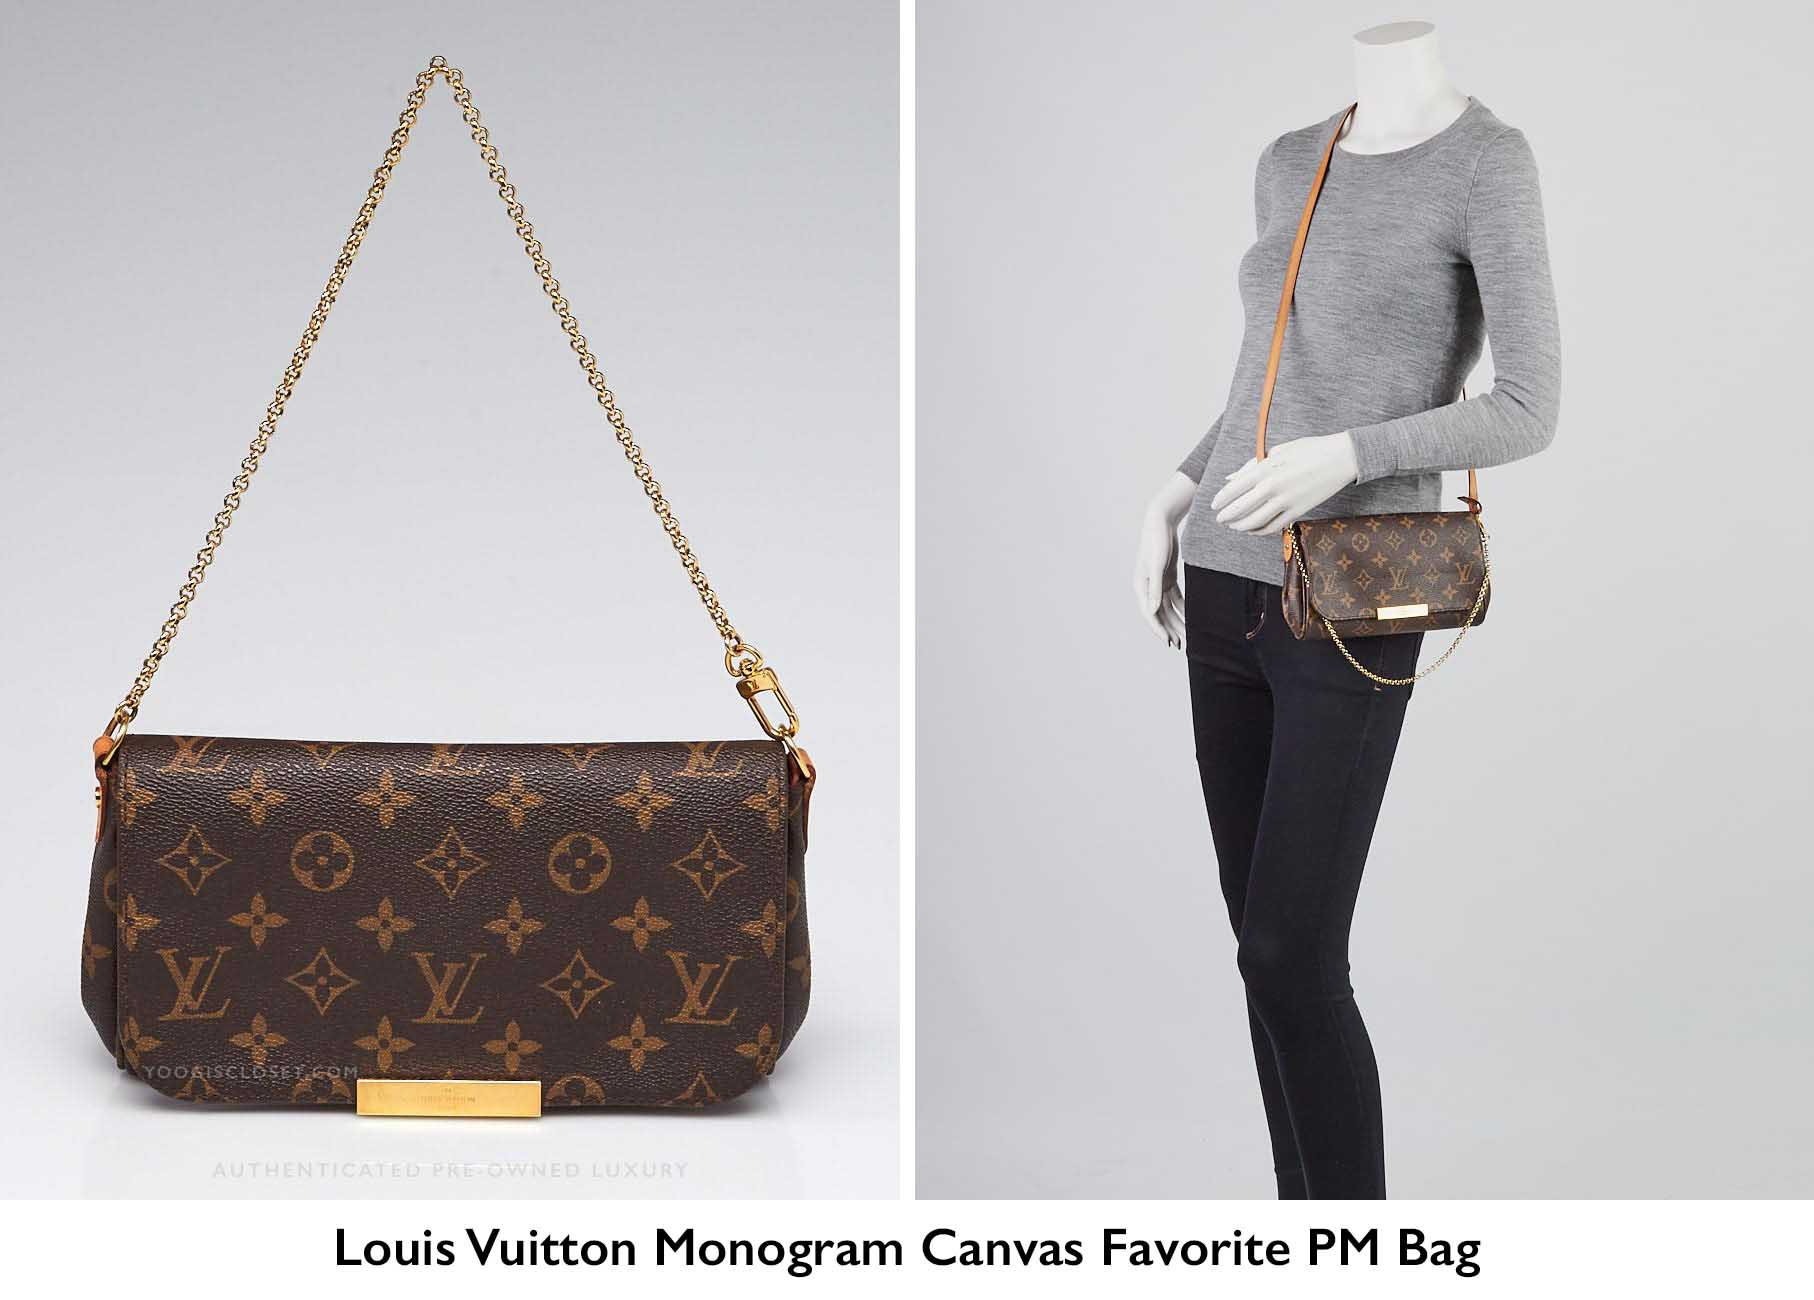 Authentic Louis Vuitton Monogram Canvas Favorite Pm Crossbody Bag Guaranteed At Yoogiscloset